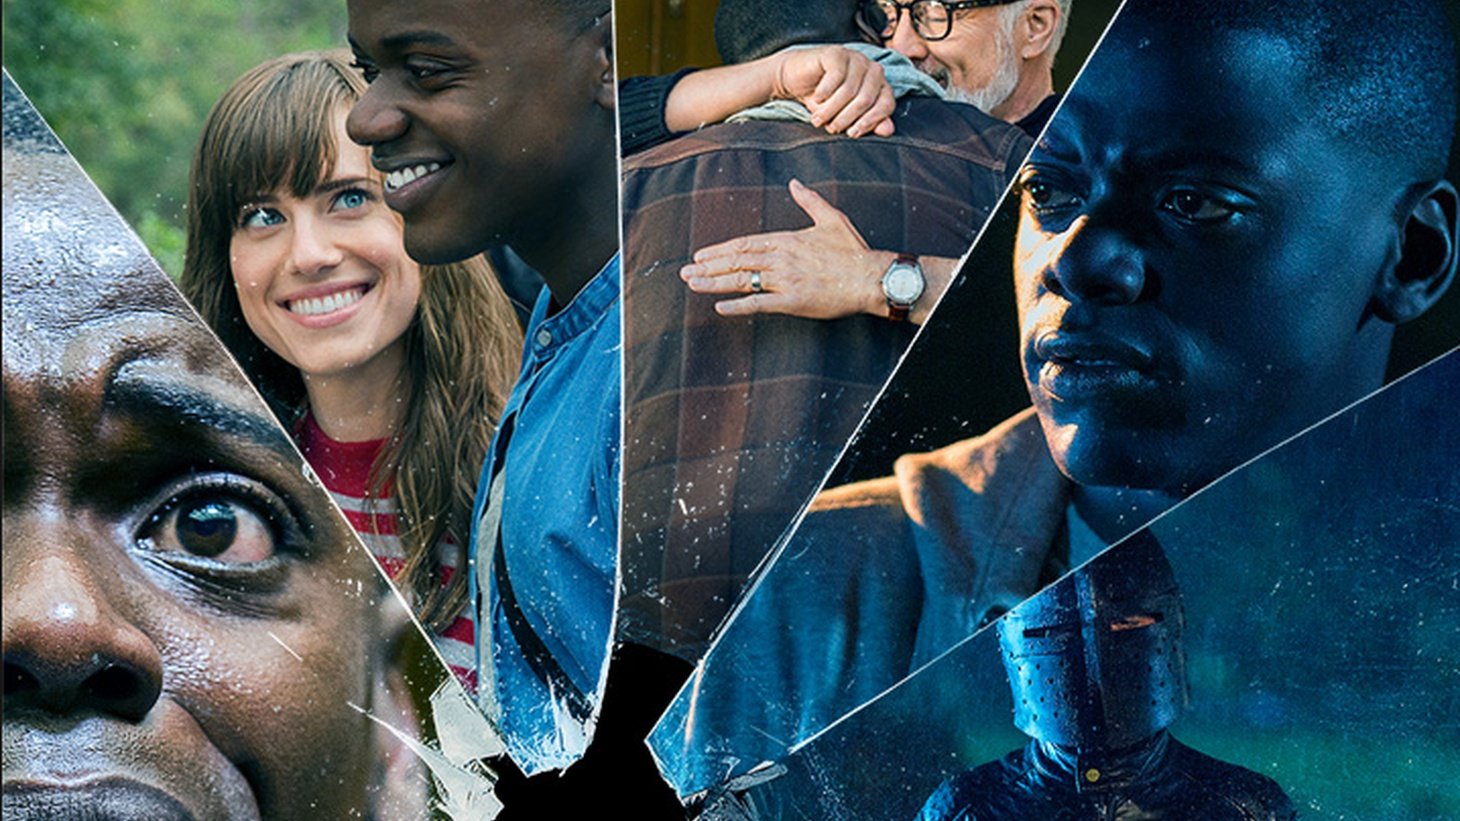 There's a terrific horror flick opening this week. Jordan Peele's debut feature scrupulously honors the genre's conventions. Get Out never strays from the path of entertainment, yet the horrors of racism lurk in every gleefully lurid frame.